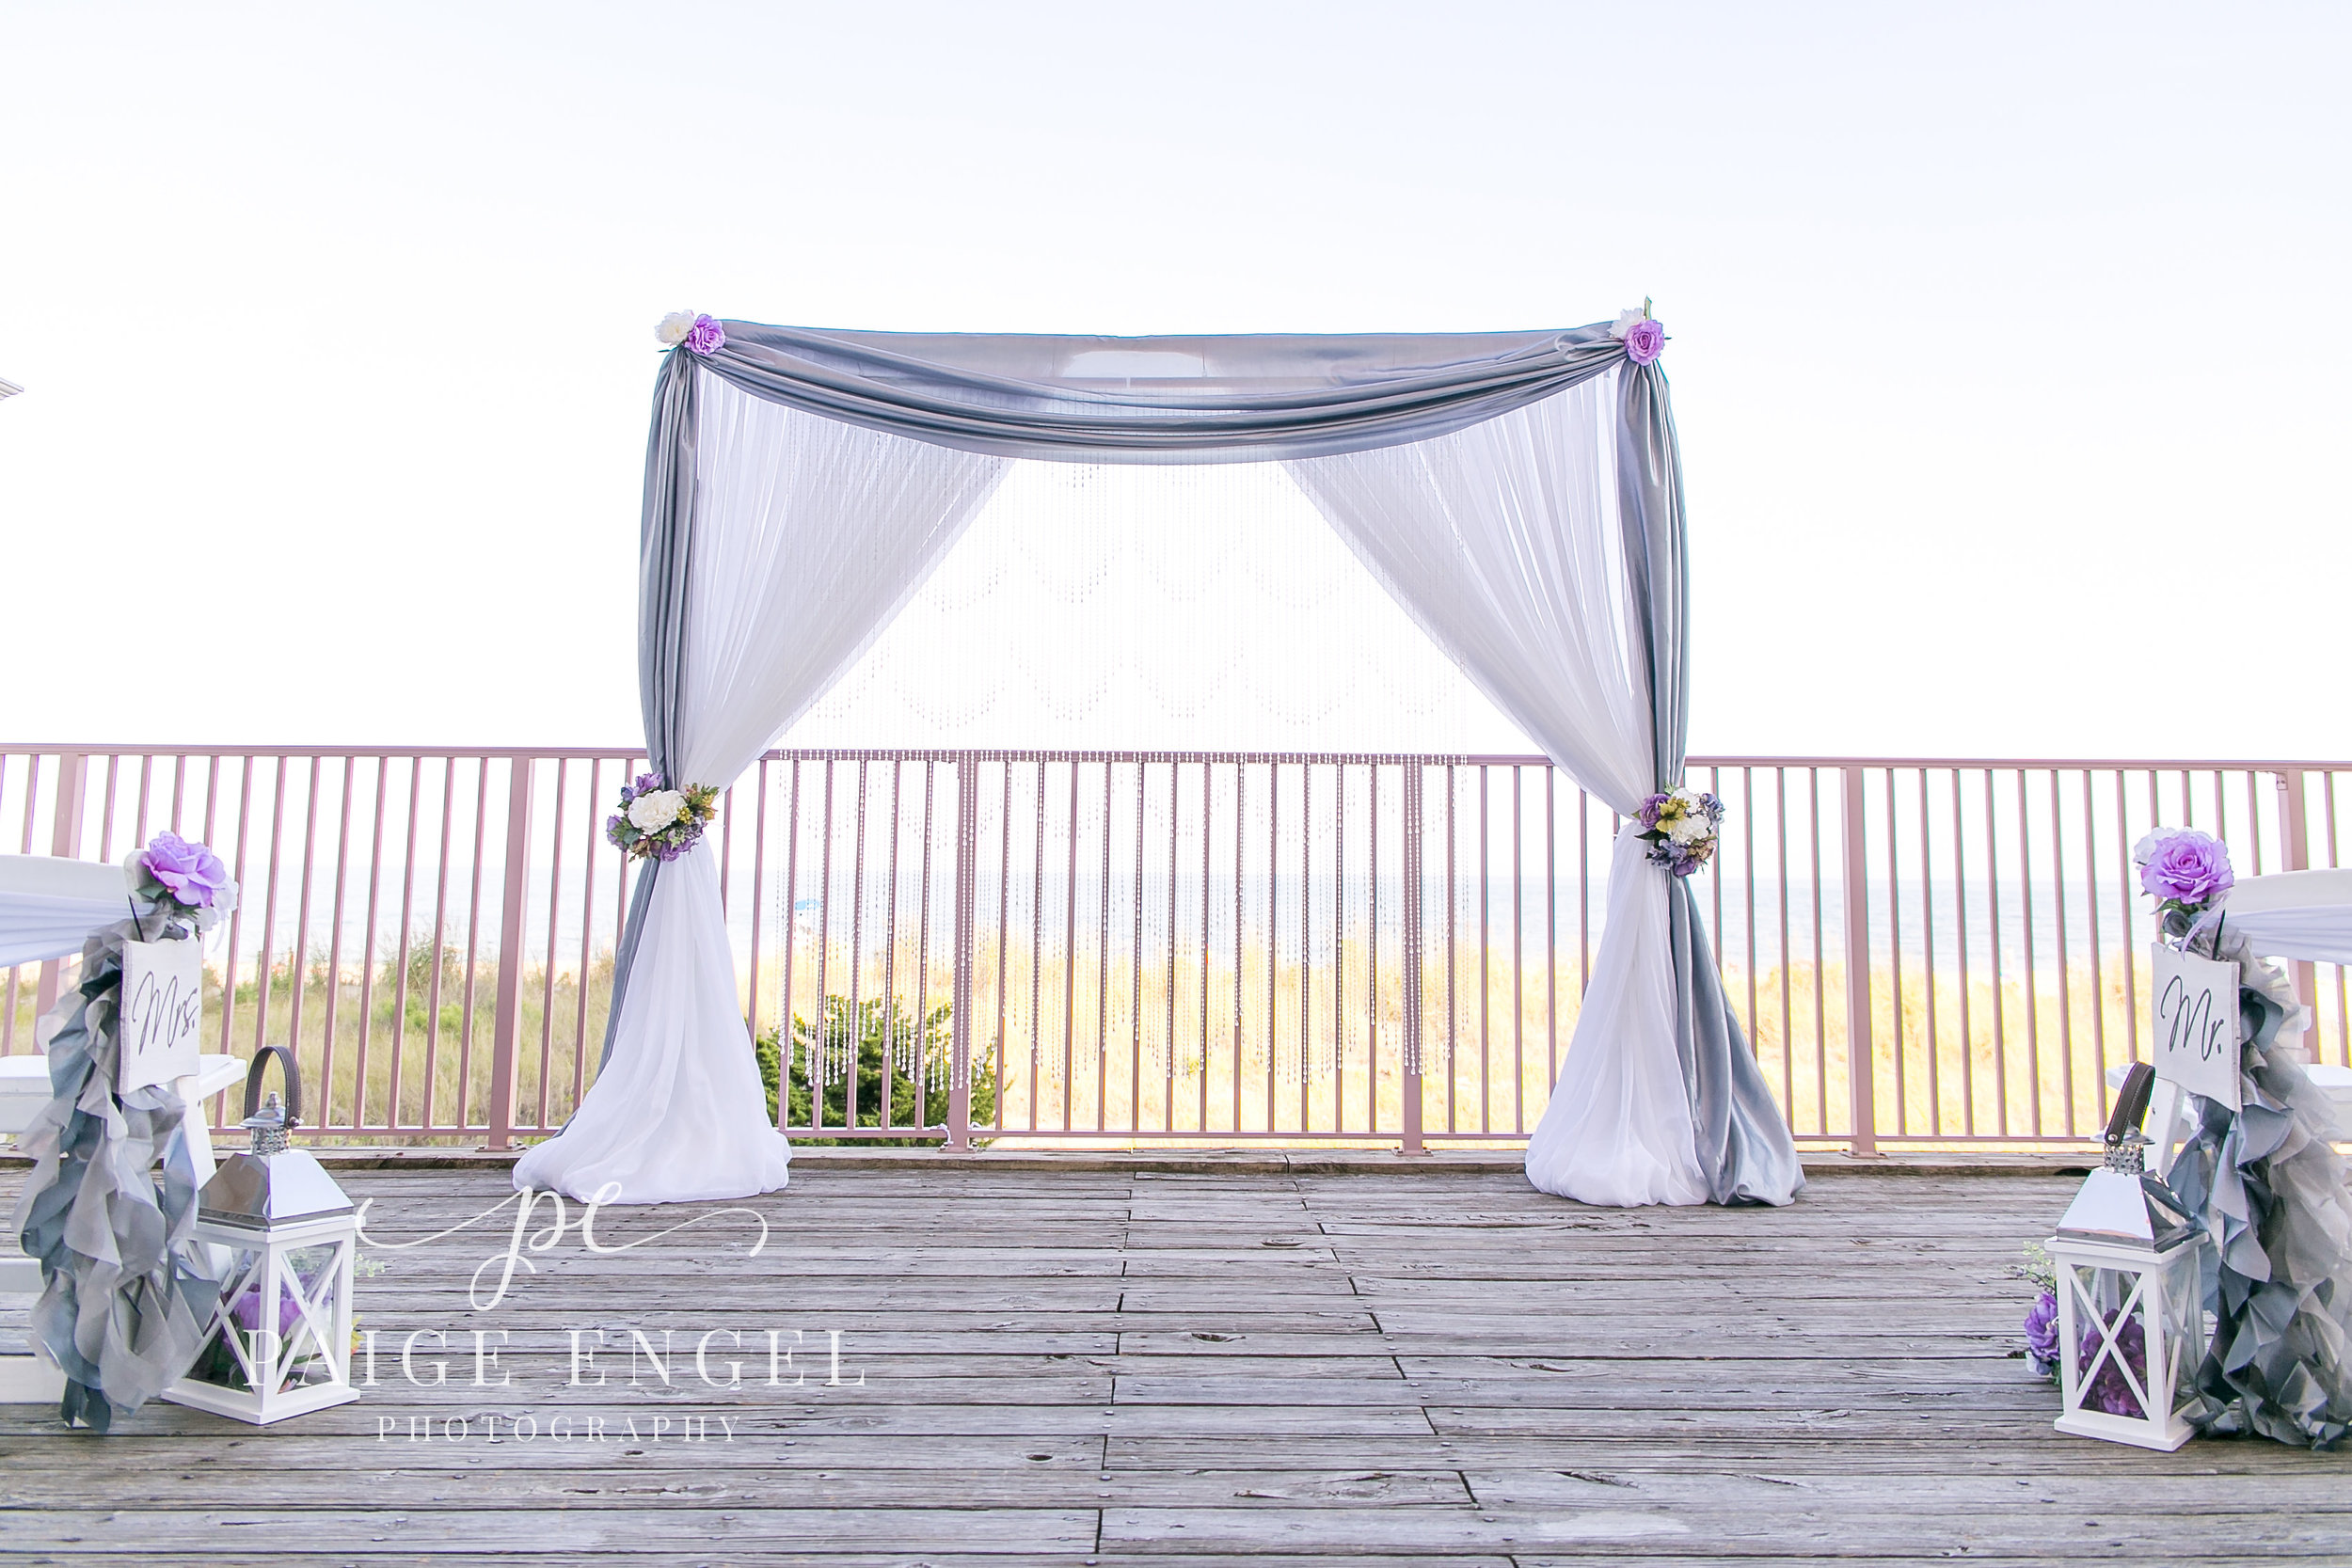 Pipe & Drape arbor used on the deck at Dunes Manor.